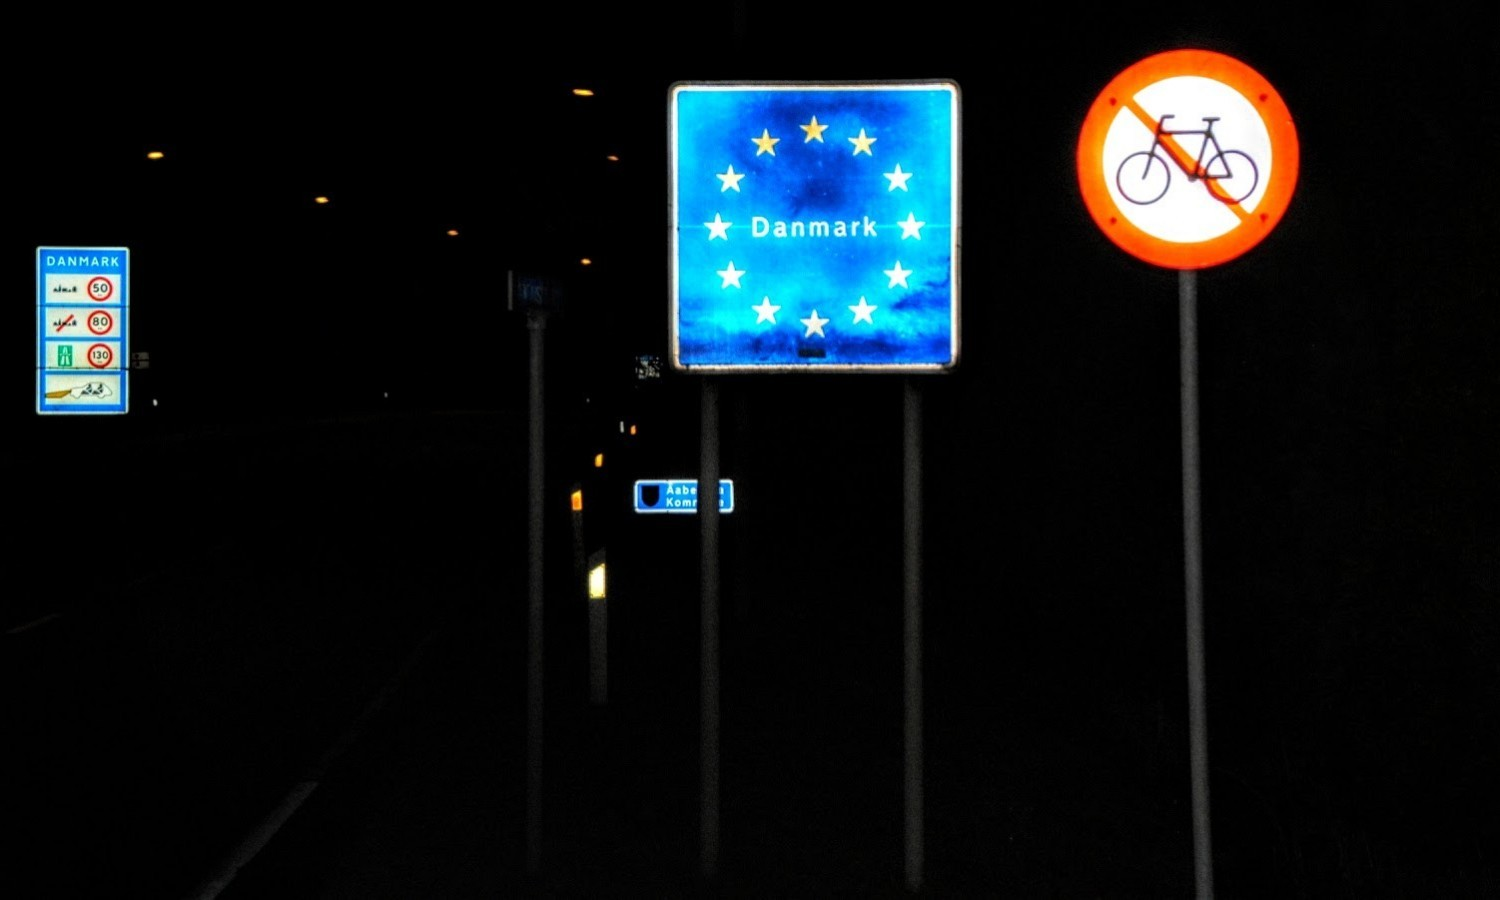 Crossing the border between Denmark and Germany per hitchhiker in 2009 / Flickr / Ingolf / CC BY-NC 2.0